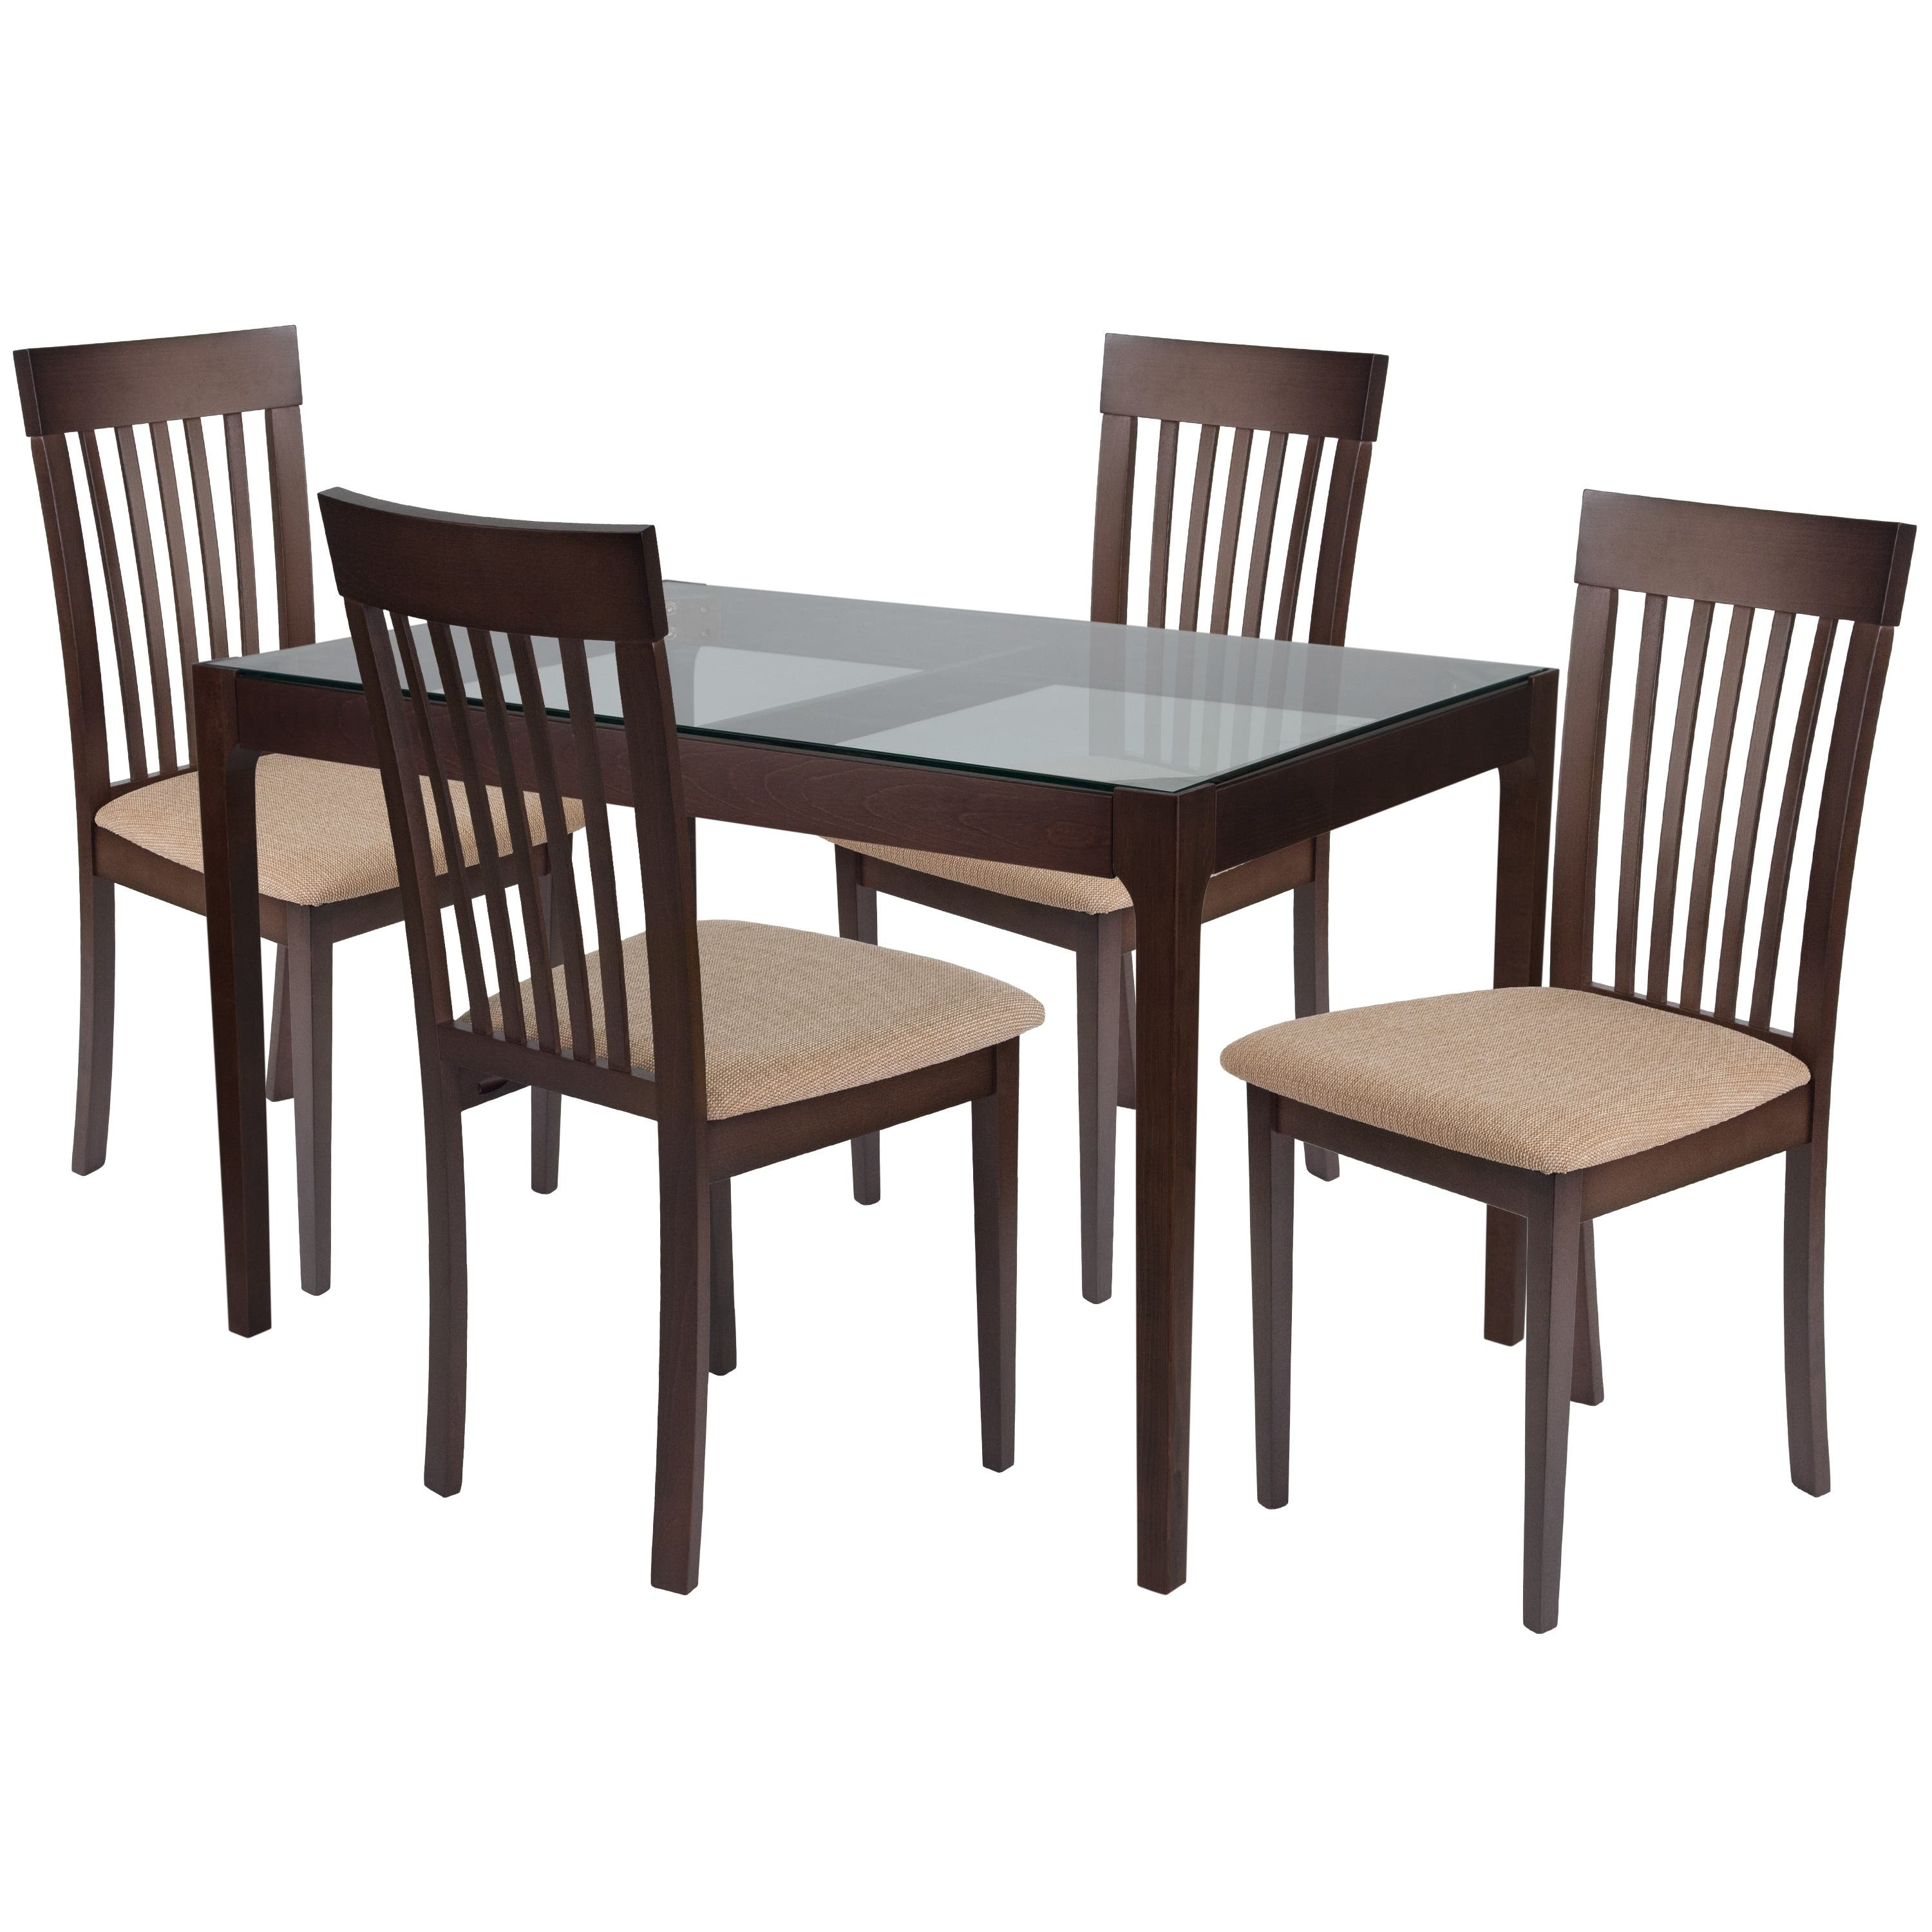 Dining Sets Online: Buy Kitchen & Dining Room Sets Online At Overstock